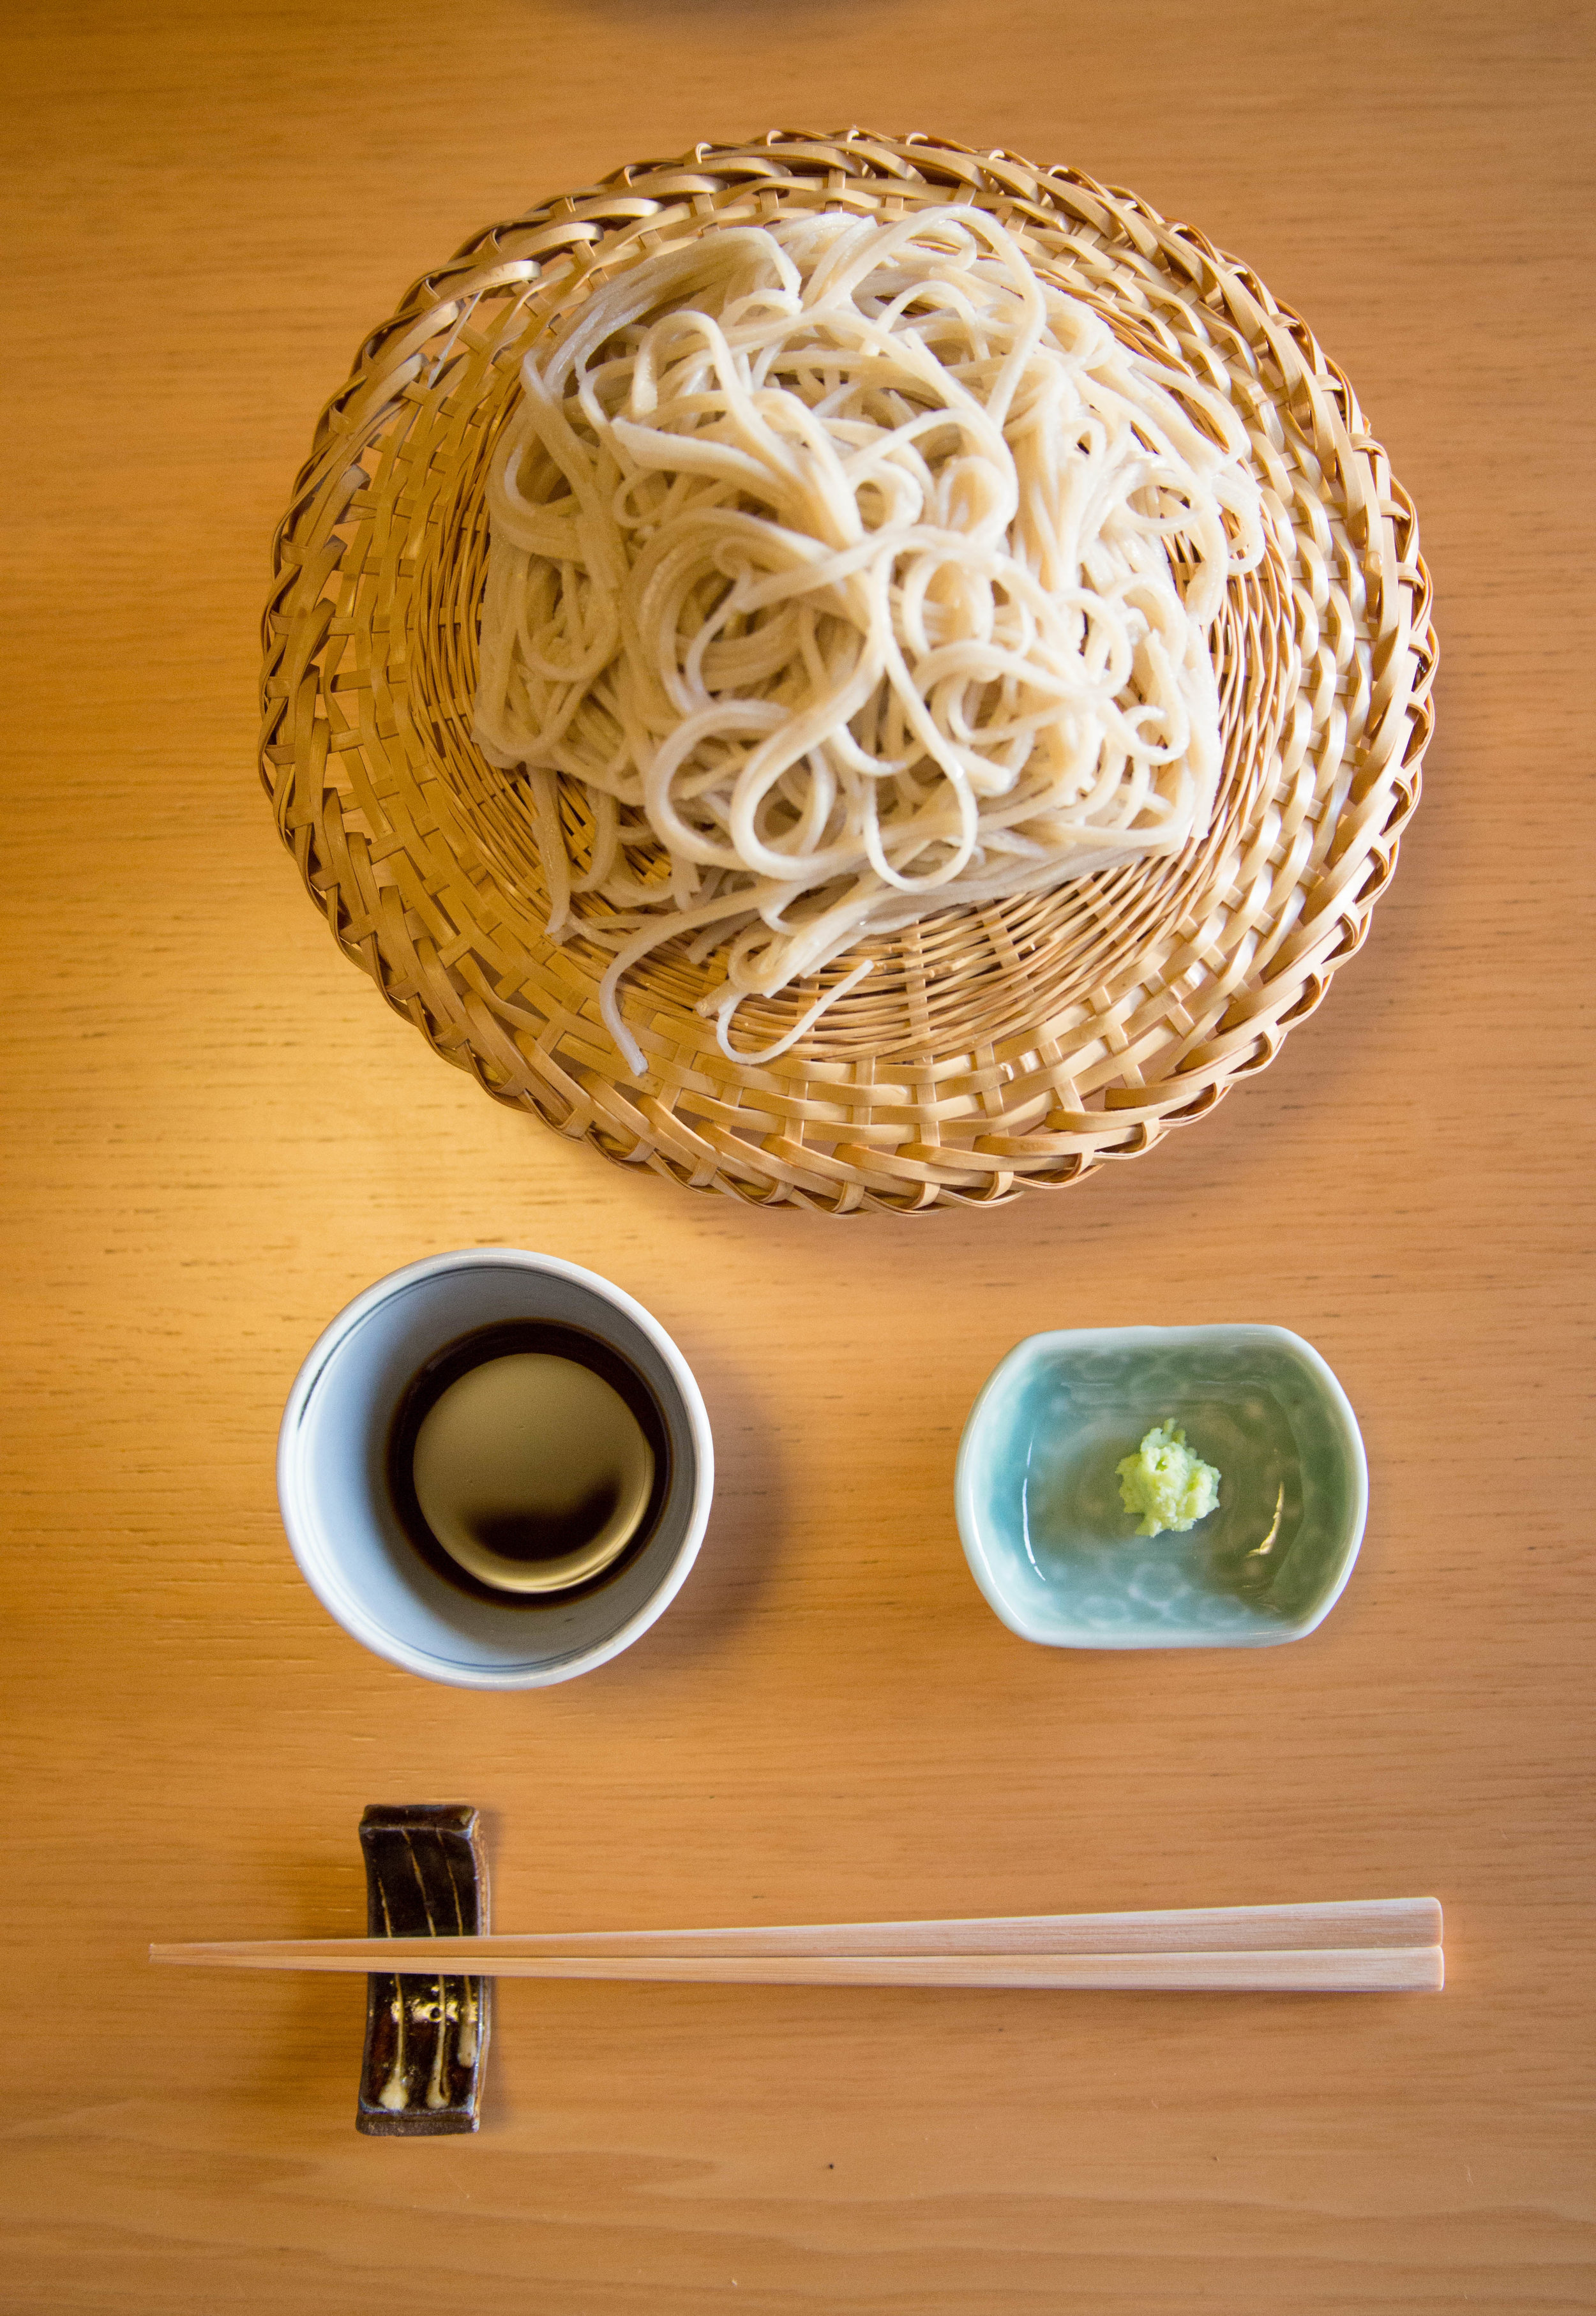 Wasabi (green paste) is commonly served with soba noodles (Japanese buckwheat noodles). ©TOKI